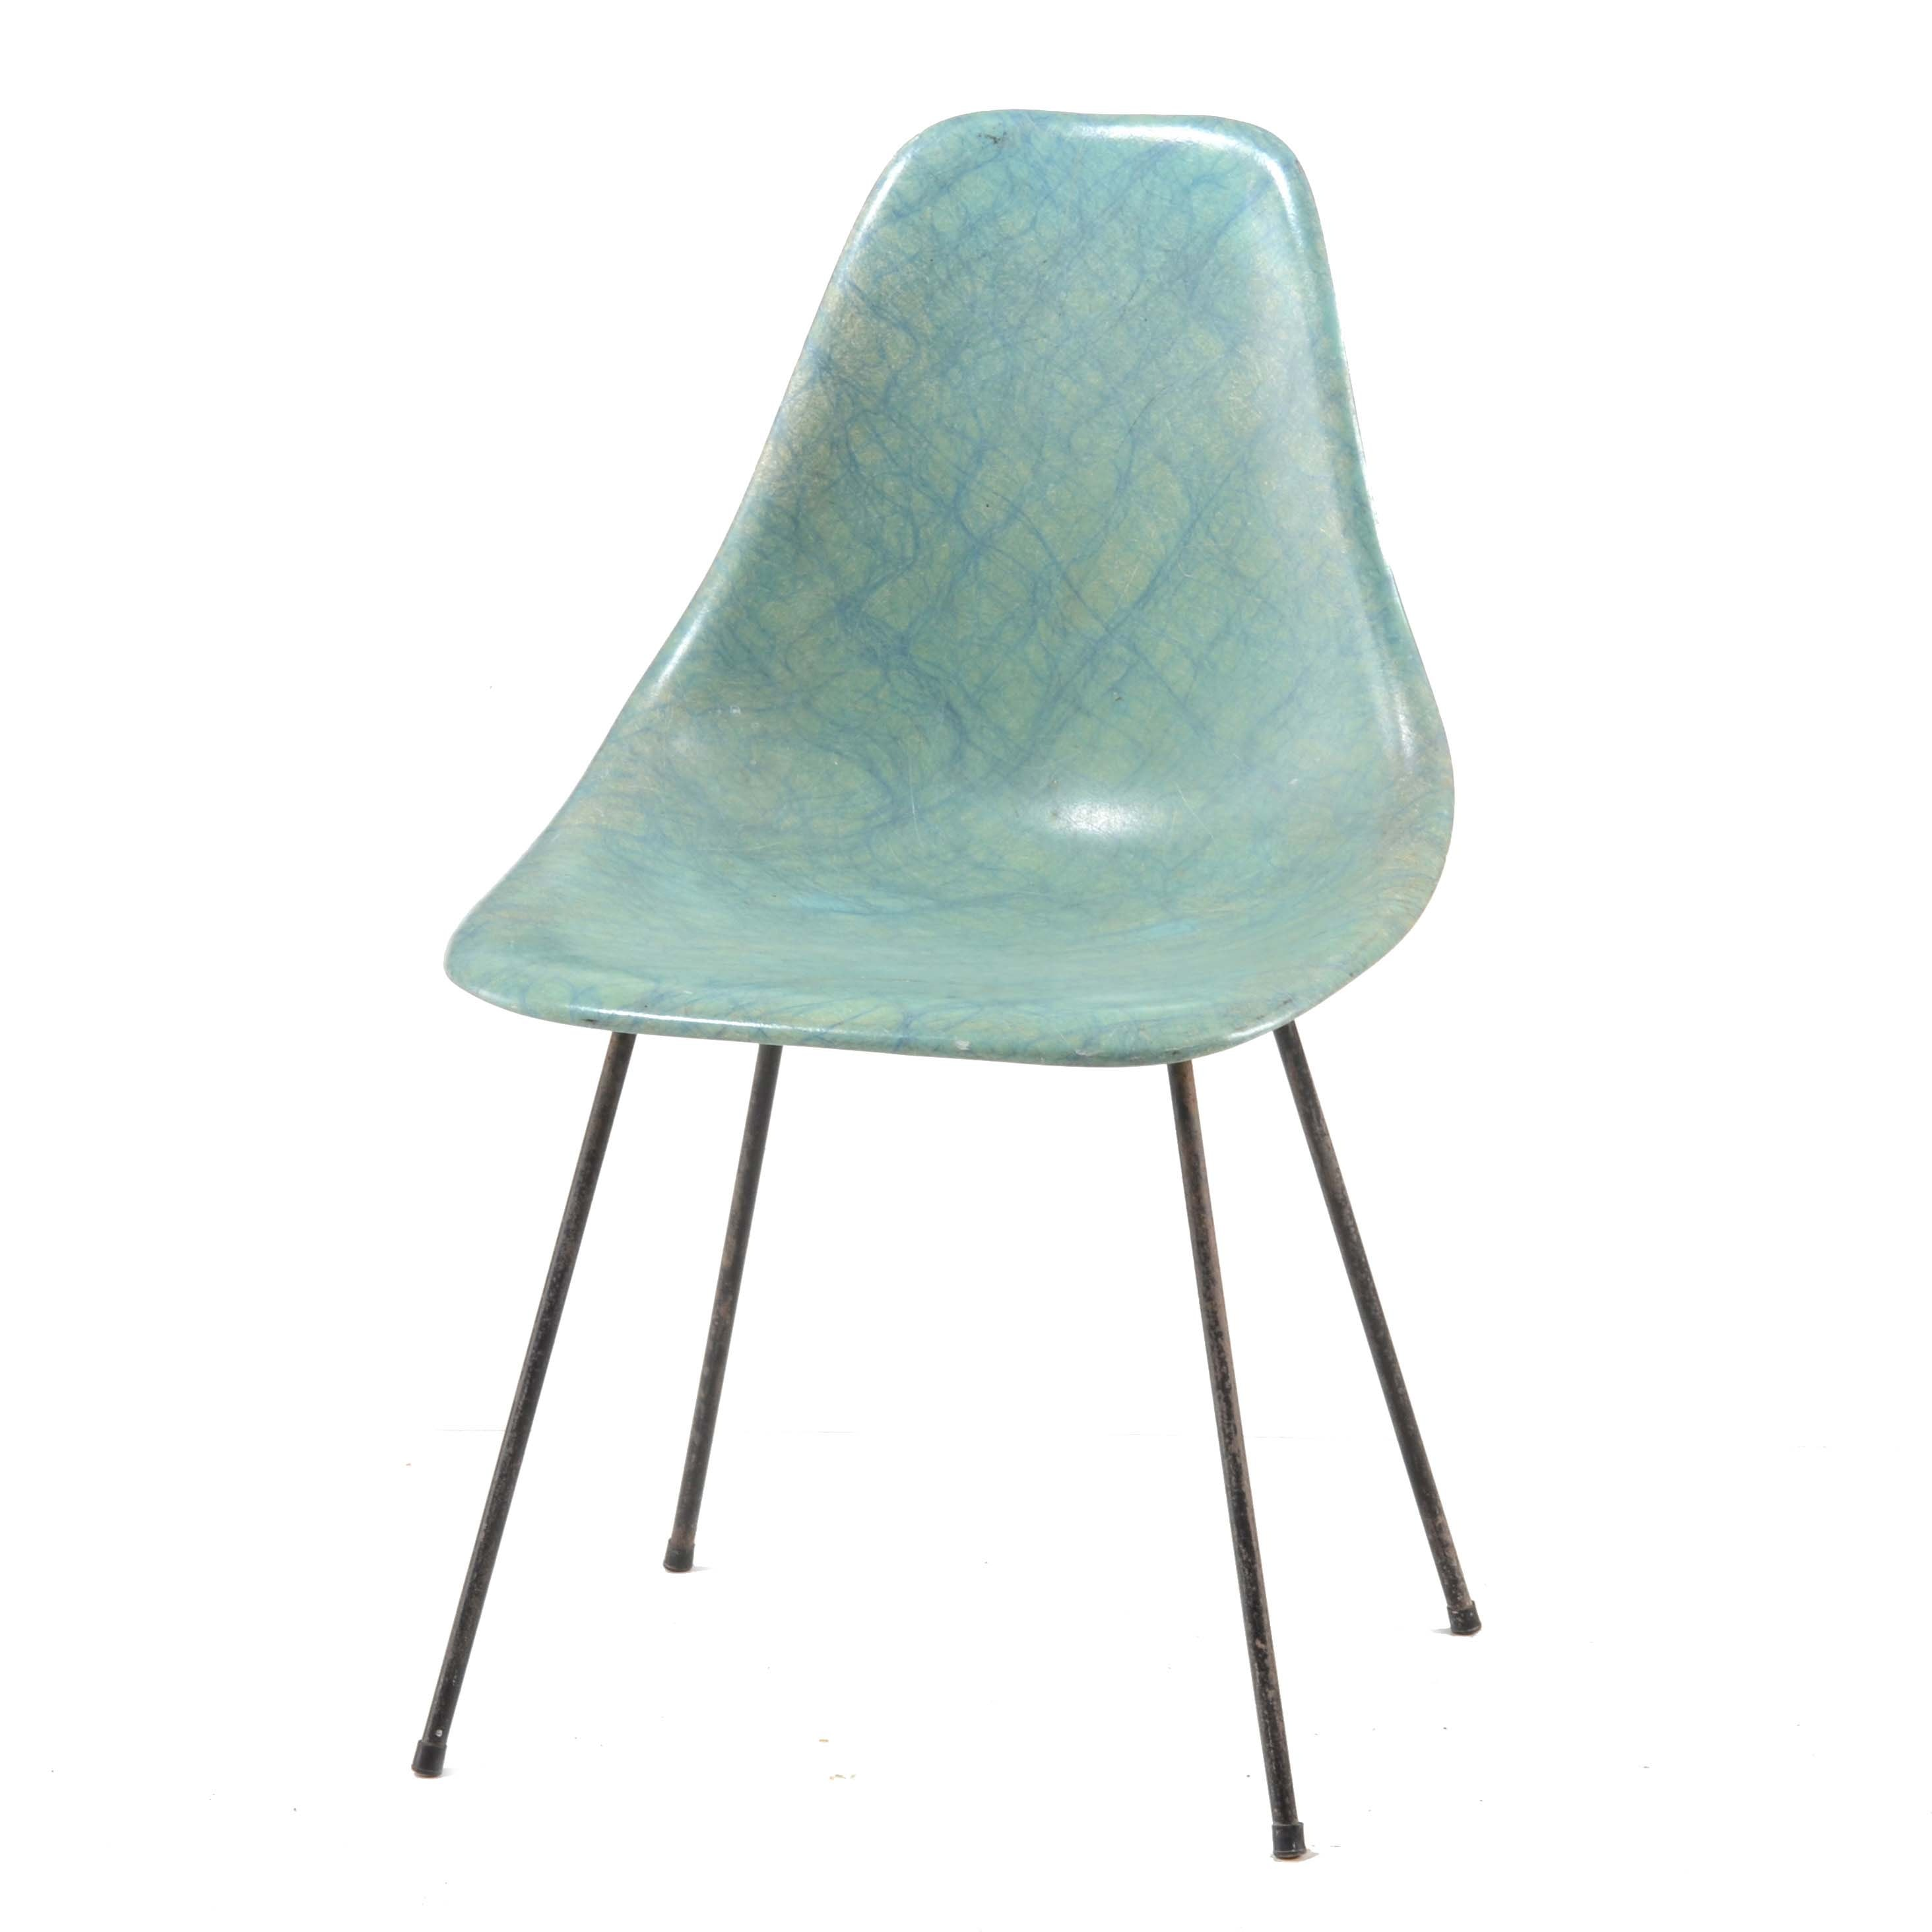 Mid Century Modern Eames Style Chair